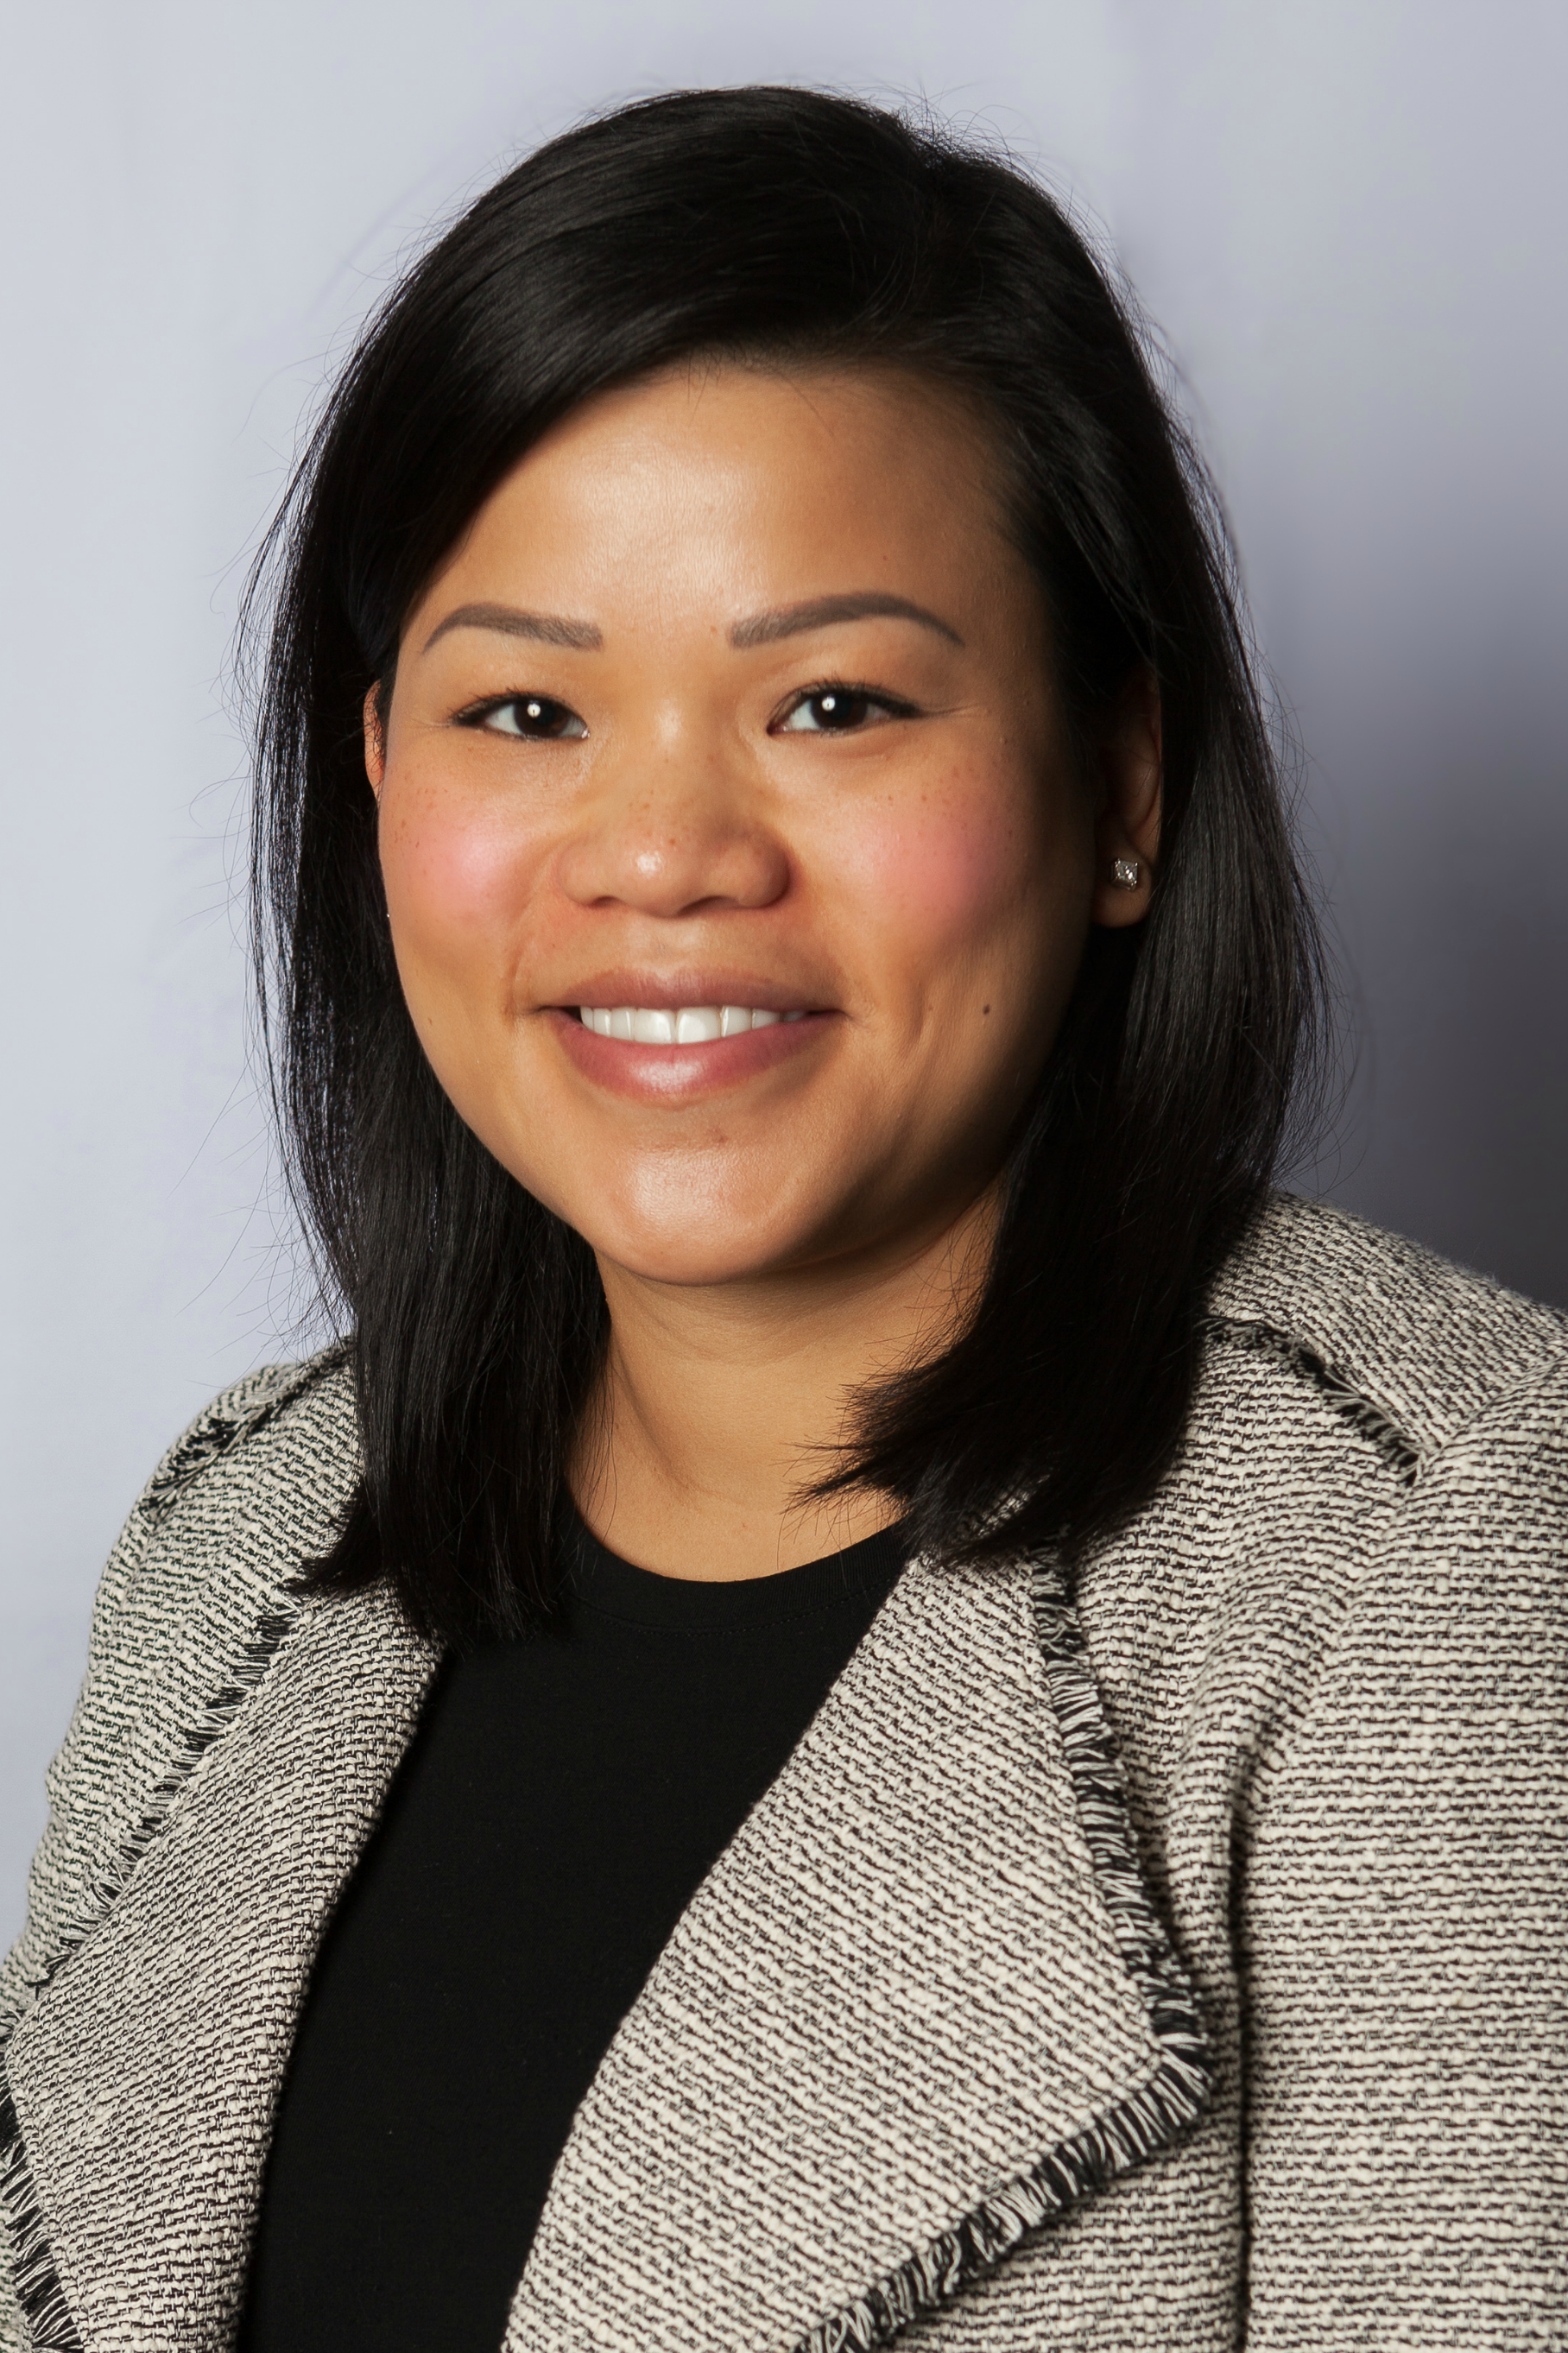 Dr. Thao Nguyen, MD - Orthopaedic Medical Group of Tampa Bay